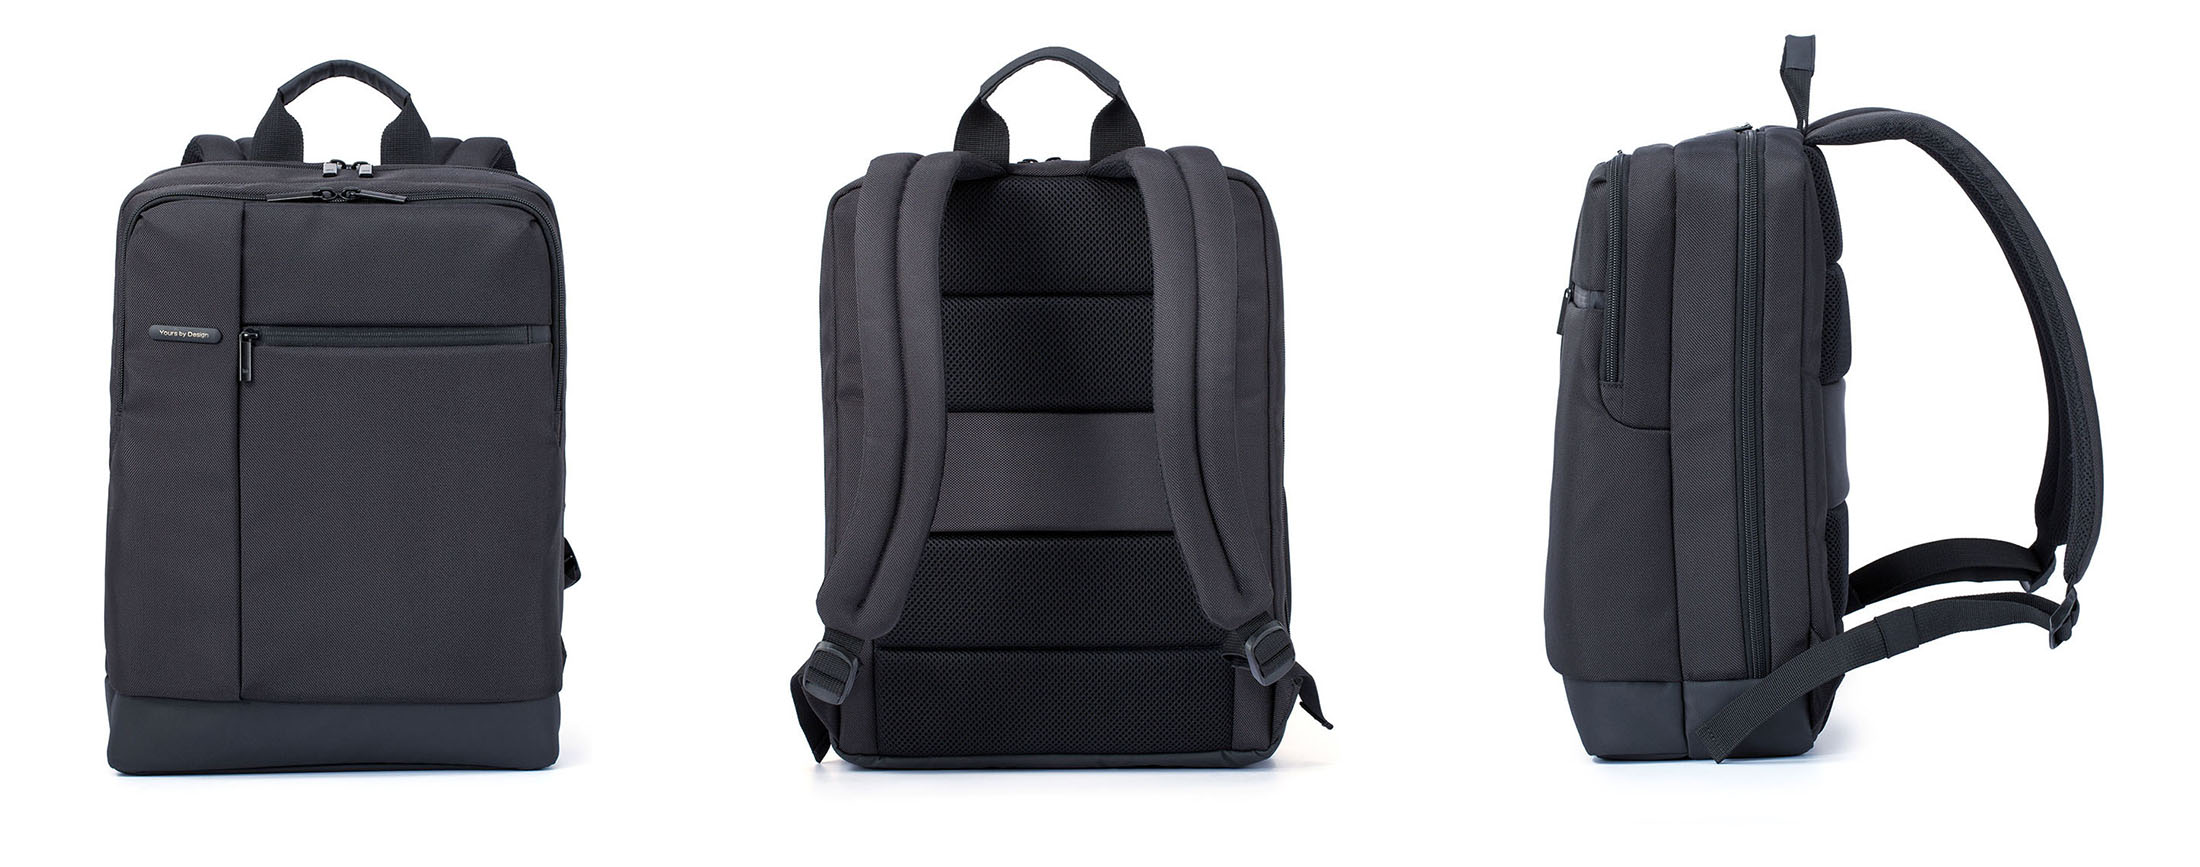 xiaomi mi business backpack t01